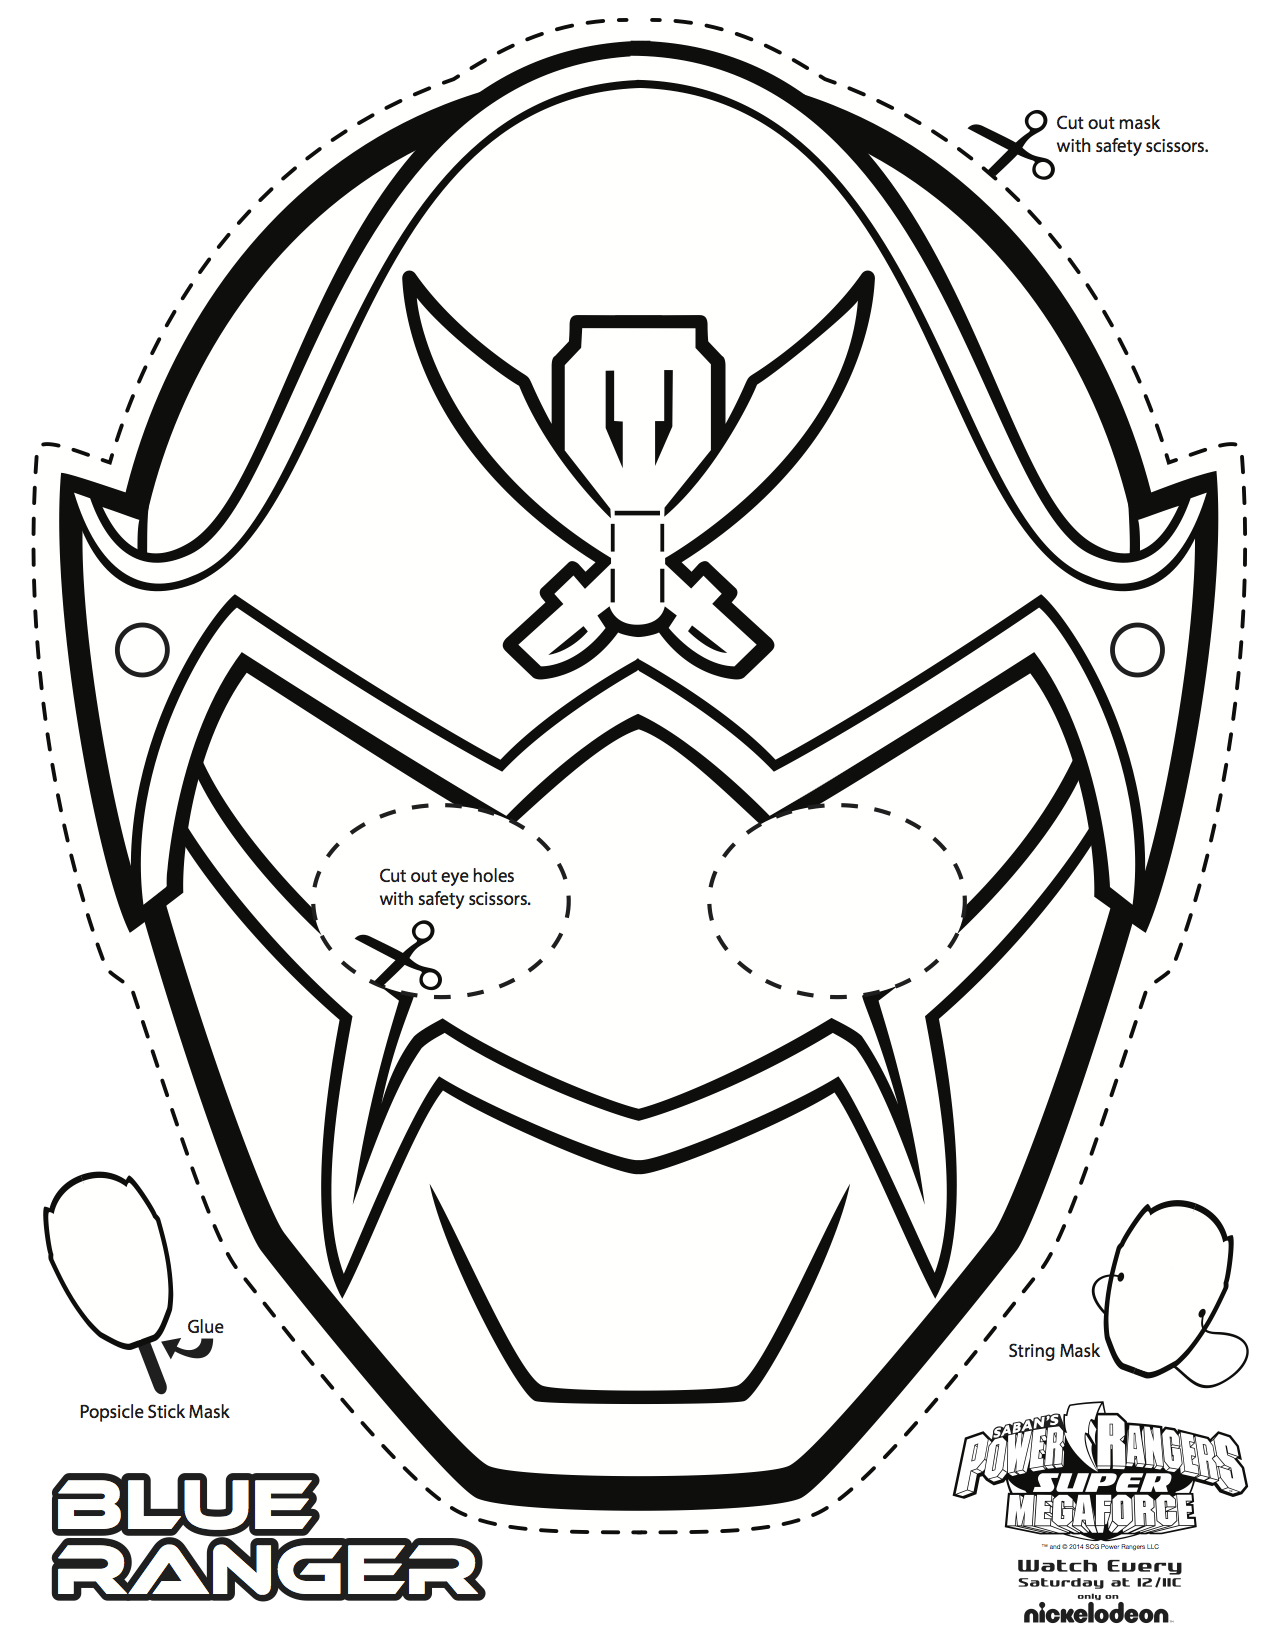 Po po power ranger pages to color - Morph Into Action With Power Rangers Super Megaforce Free Activity Sheets